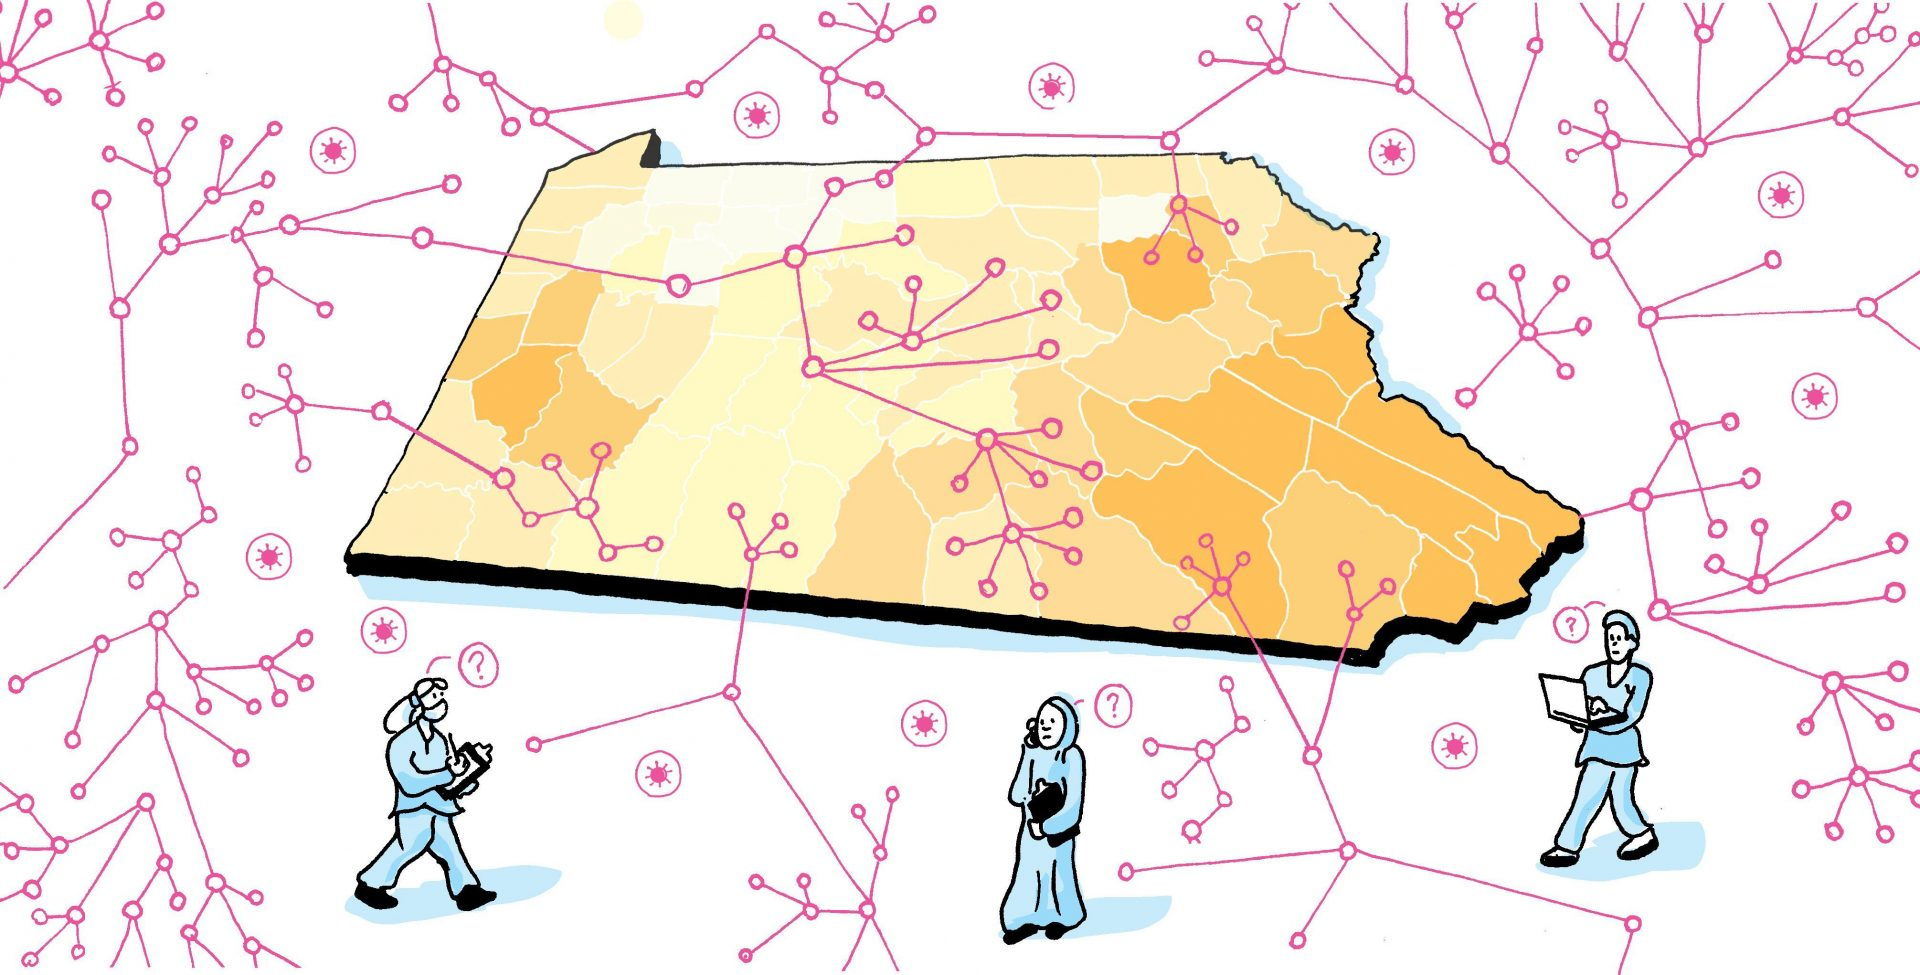 Officials in Massachusetts, New York, New Jersey, and Connecticut have all announced plans for a surge in contact tracers. So far, Pennsylvania health officials say they're still figuring out what to do.